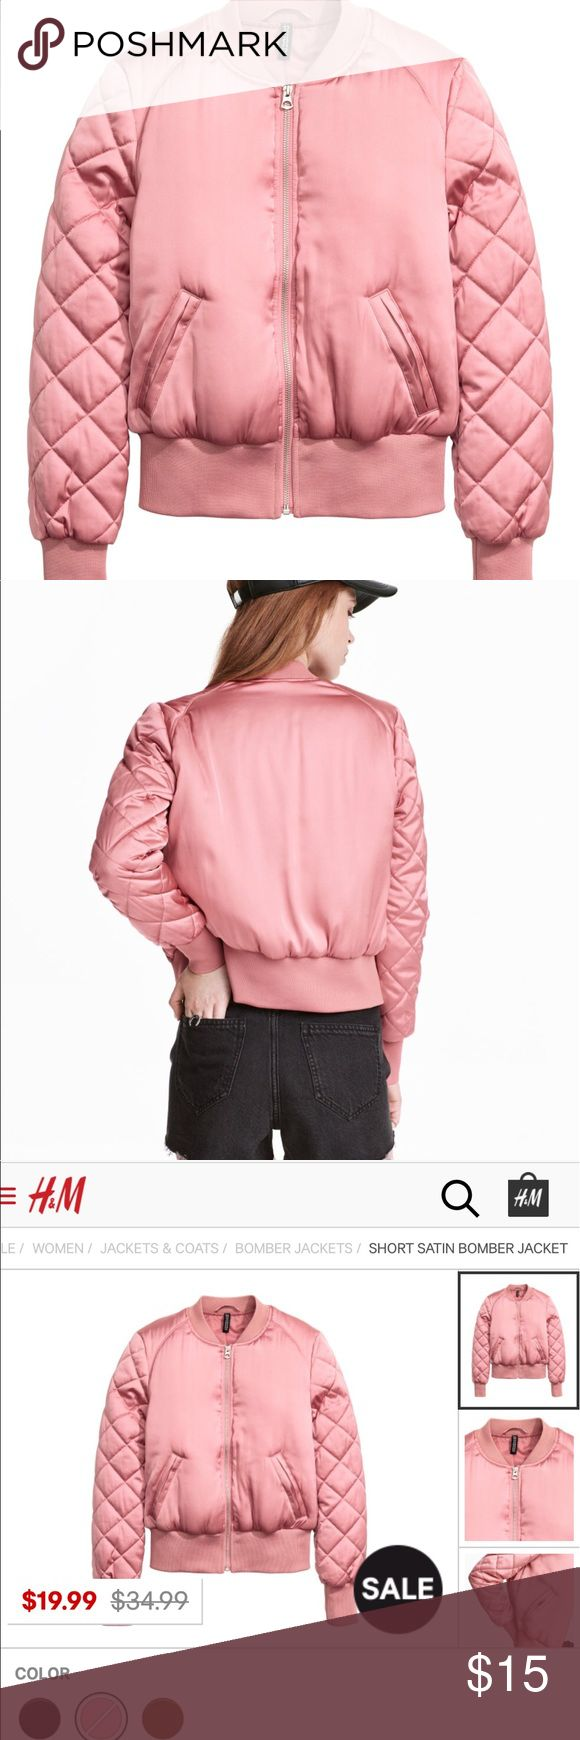 H&M Pink Satin Bomber Jacket Size 8 unif for exposure UNIF Jackets & Coats